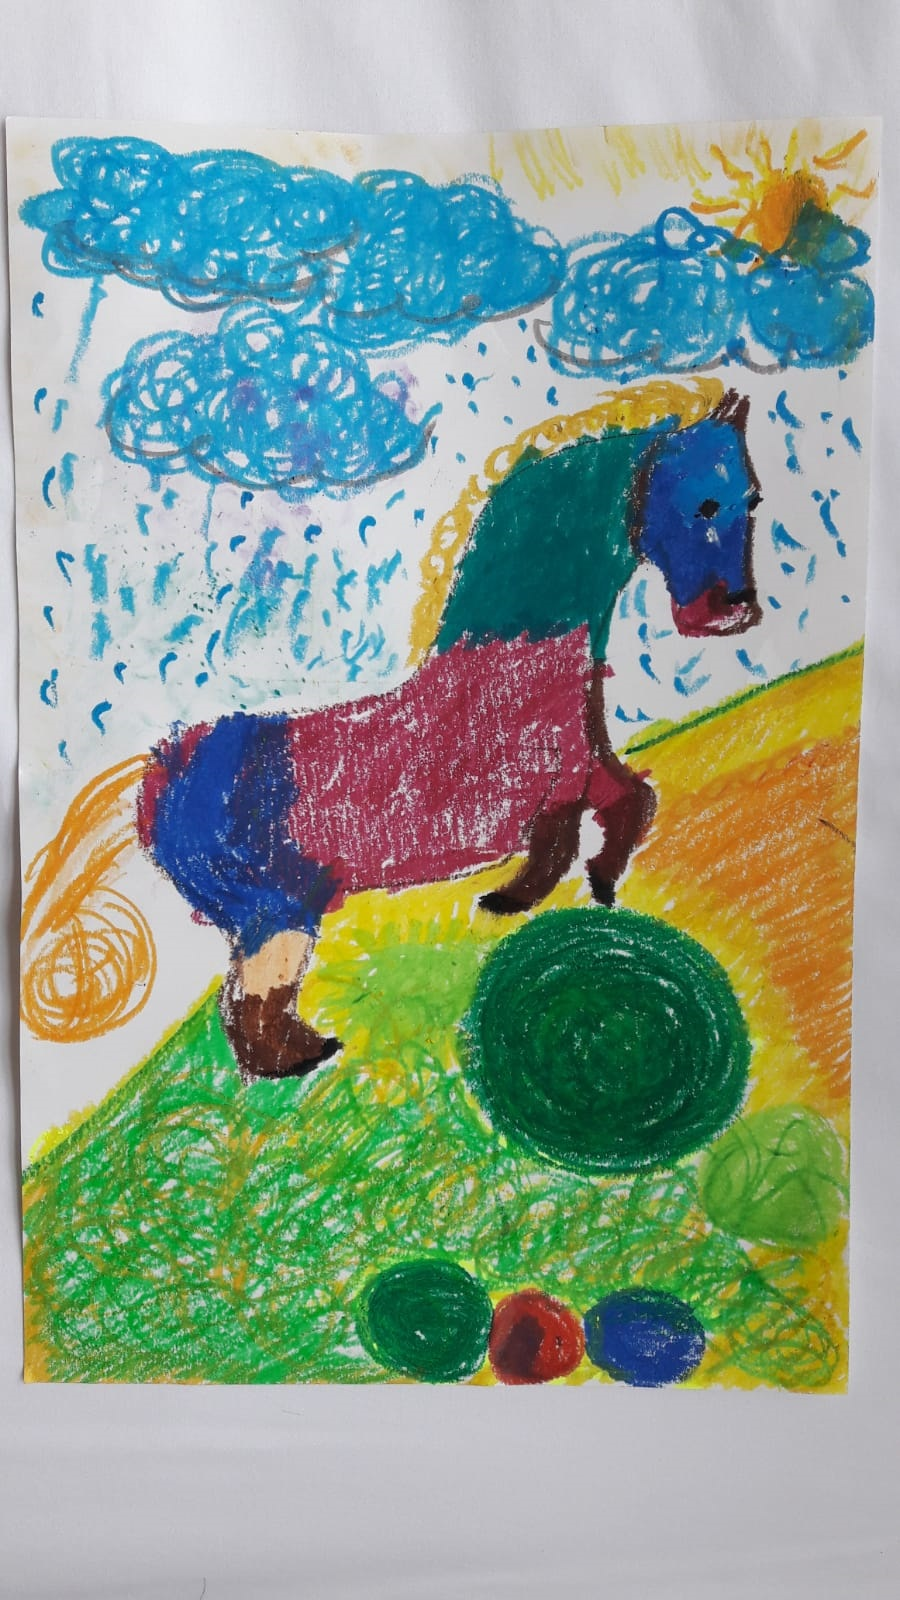 Lucas, aged 3, inspired by George Stubbs, 'Whistlejacket'